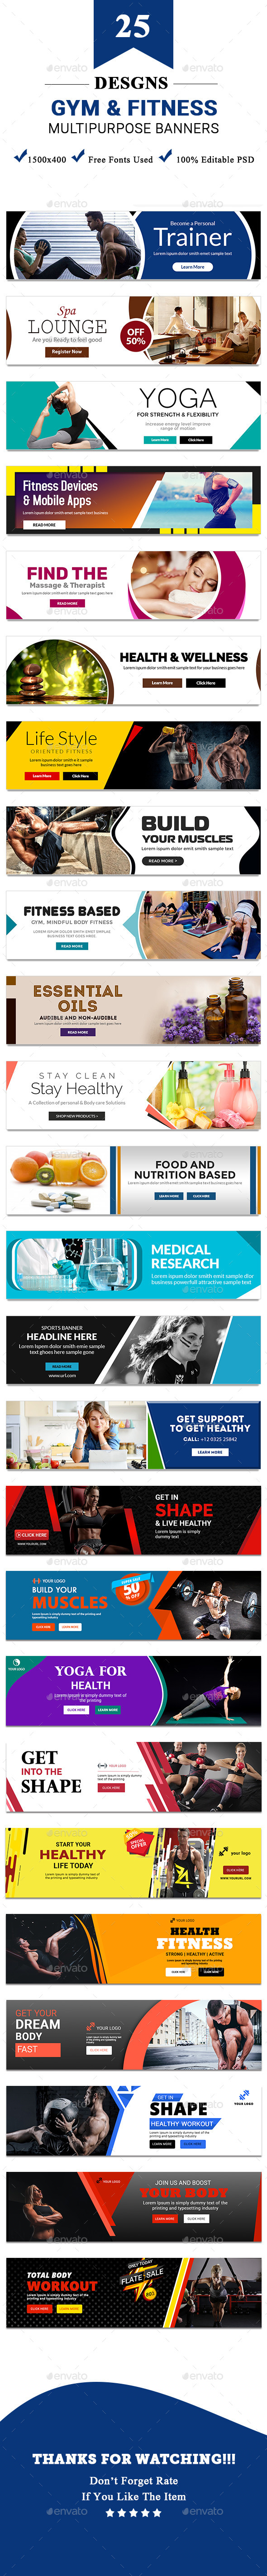 Gym and Fitness Multipurpose Banners - 25 Designs - Banners & Ads Web Elements